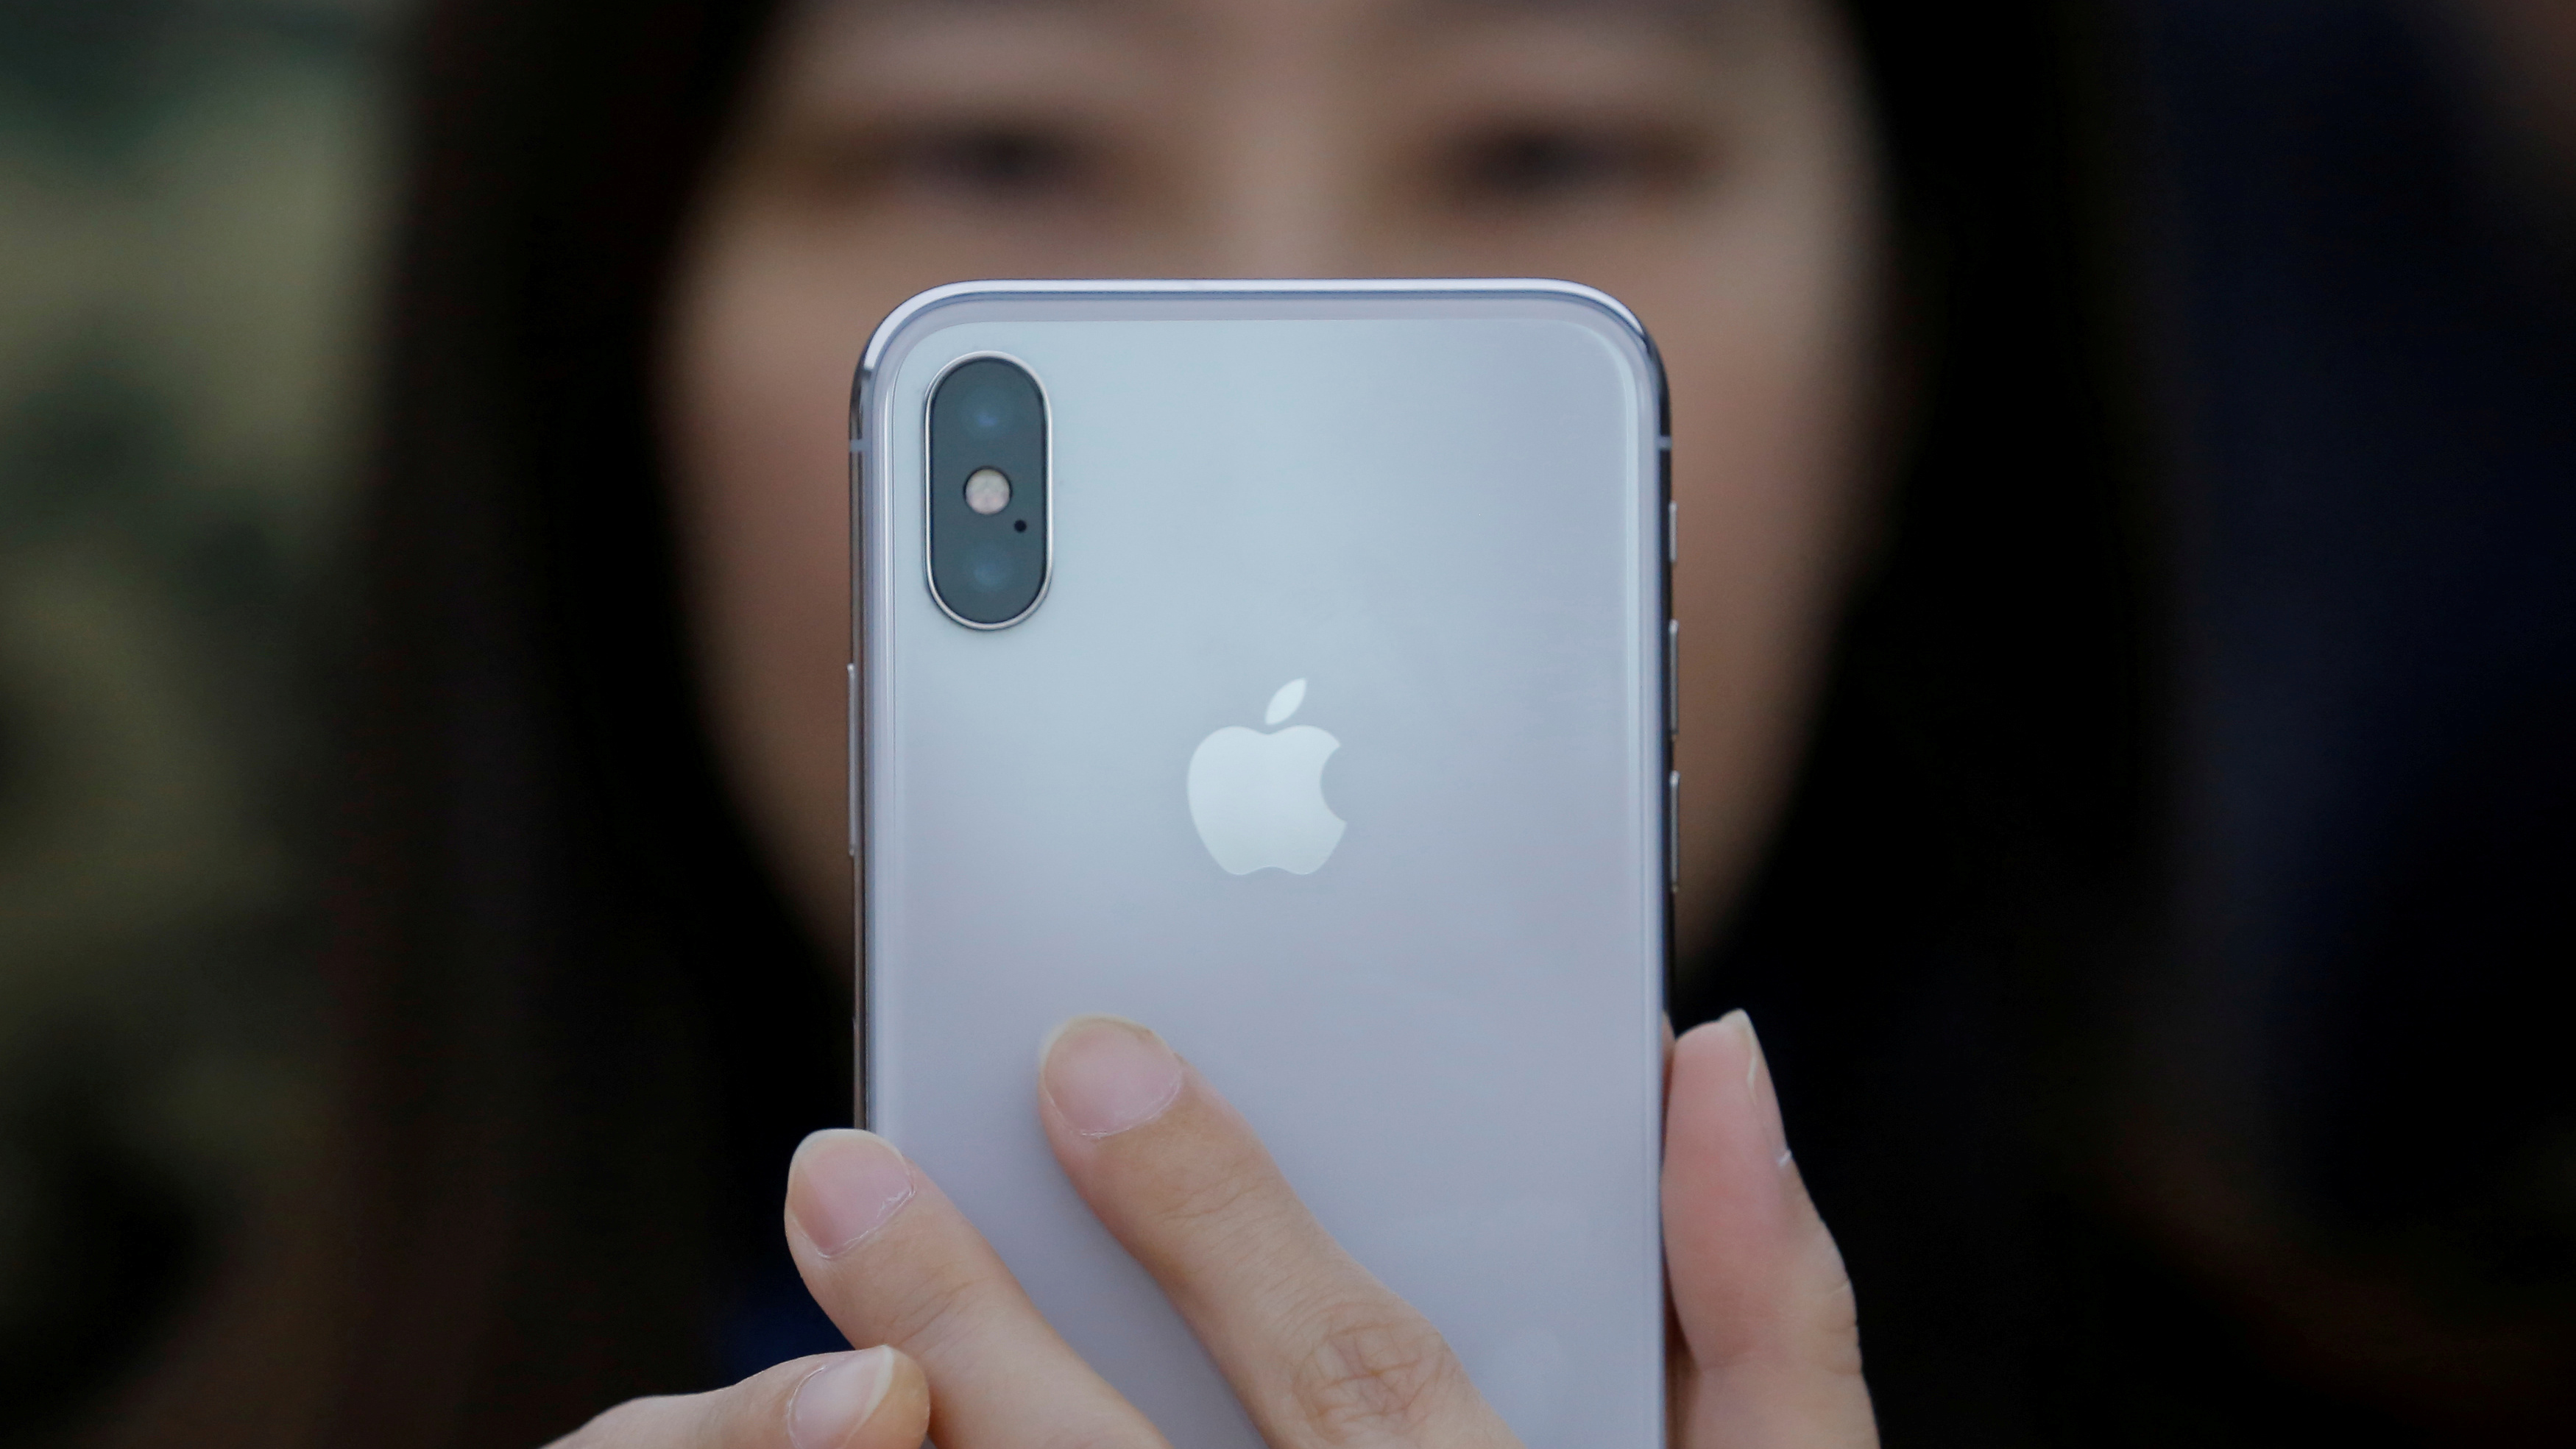 FILE PHOTO: A attendee uses a new iPhone X during a presentation for the media in Beijing, China October 31, 2017. REUTERS/Thomas Peter/File Photo - RC1C24F9CCE0